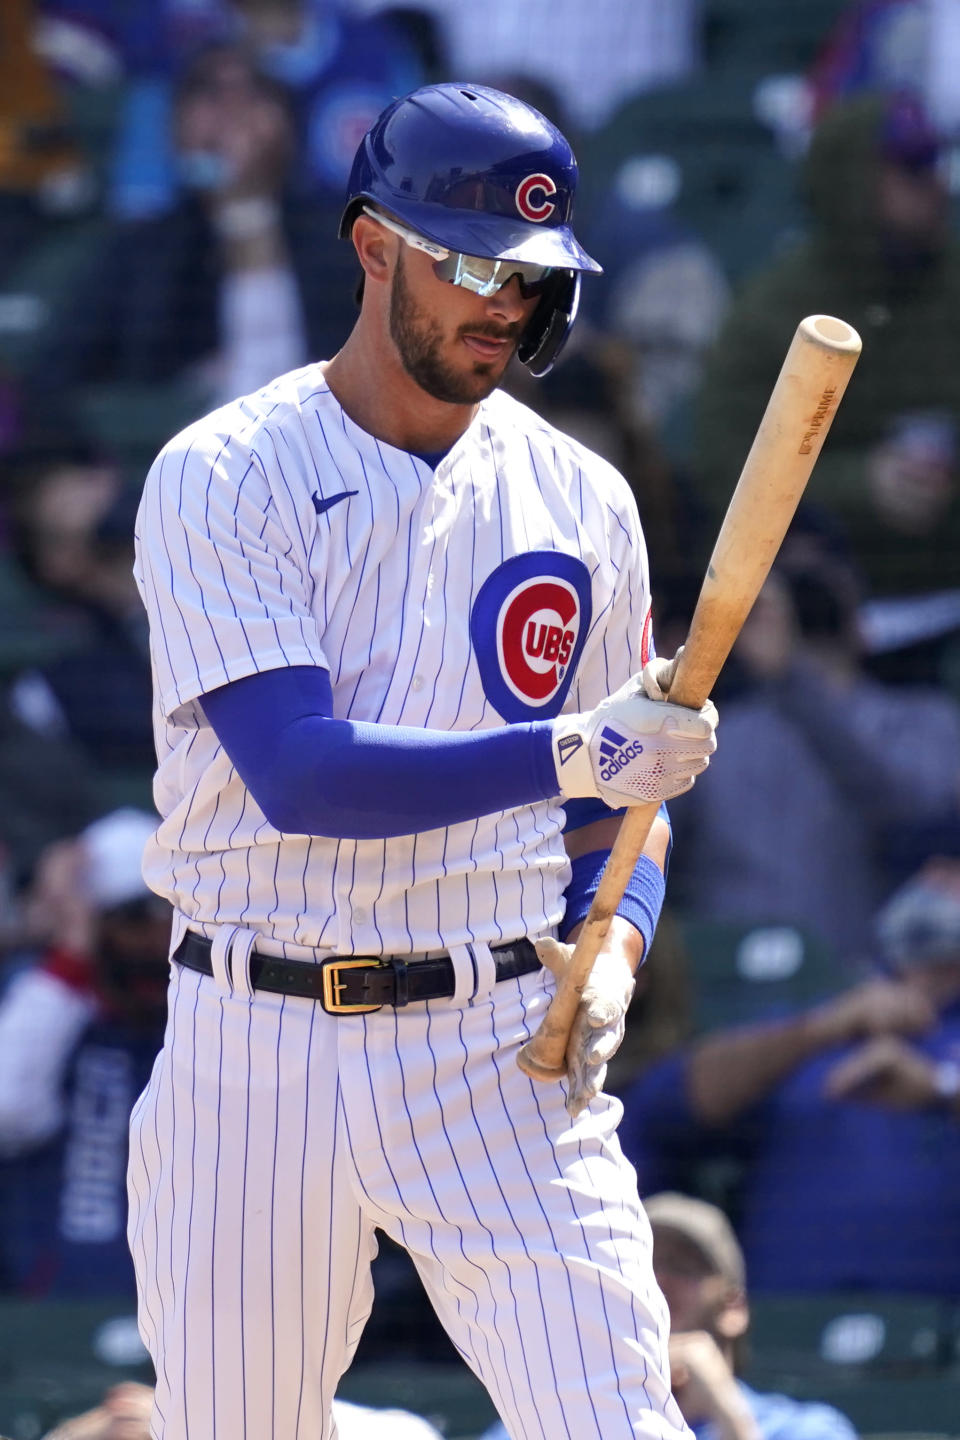 FILE - Chicago Cubs' Kris Bryant checks his bat during the first inning of a baseball game against the Pittsburgh Pirates in Chicago, in this April 3, 2021, file photo. Bryant's versatility, while producing offensive numbers that belong alongside his NL MVP season in 2016, is a big reason why Chicago is on top of the NL Central once again, helping the Cubs go on a 21-9 run while dealing with a rash of injuries. (AP Photo/Nam Y. Huh, File)